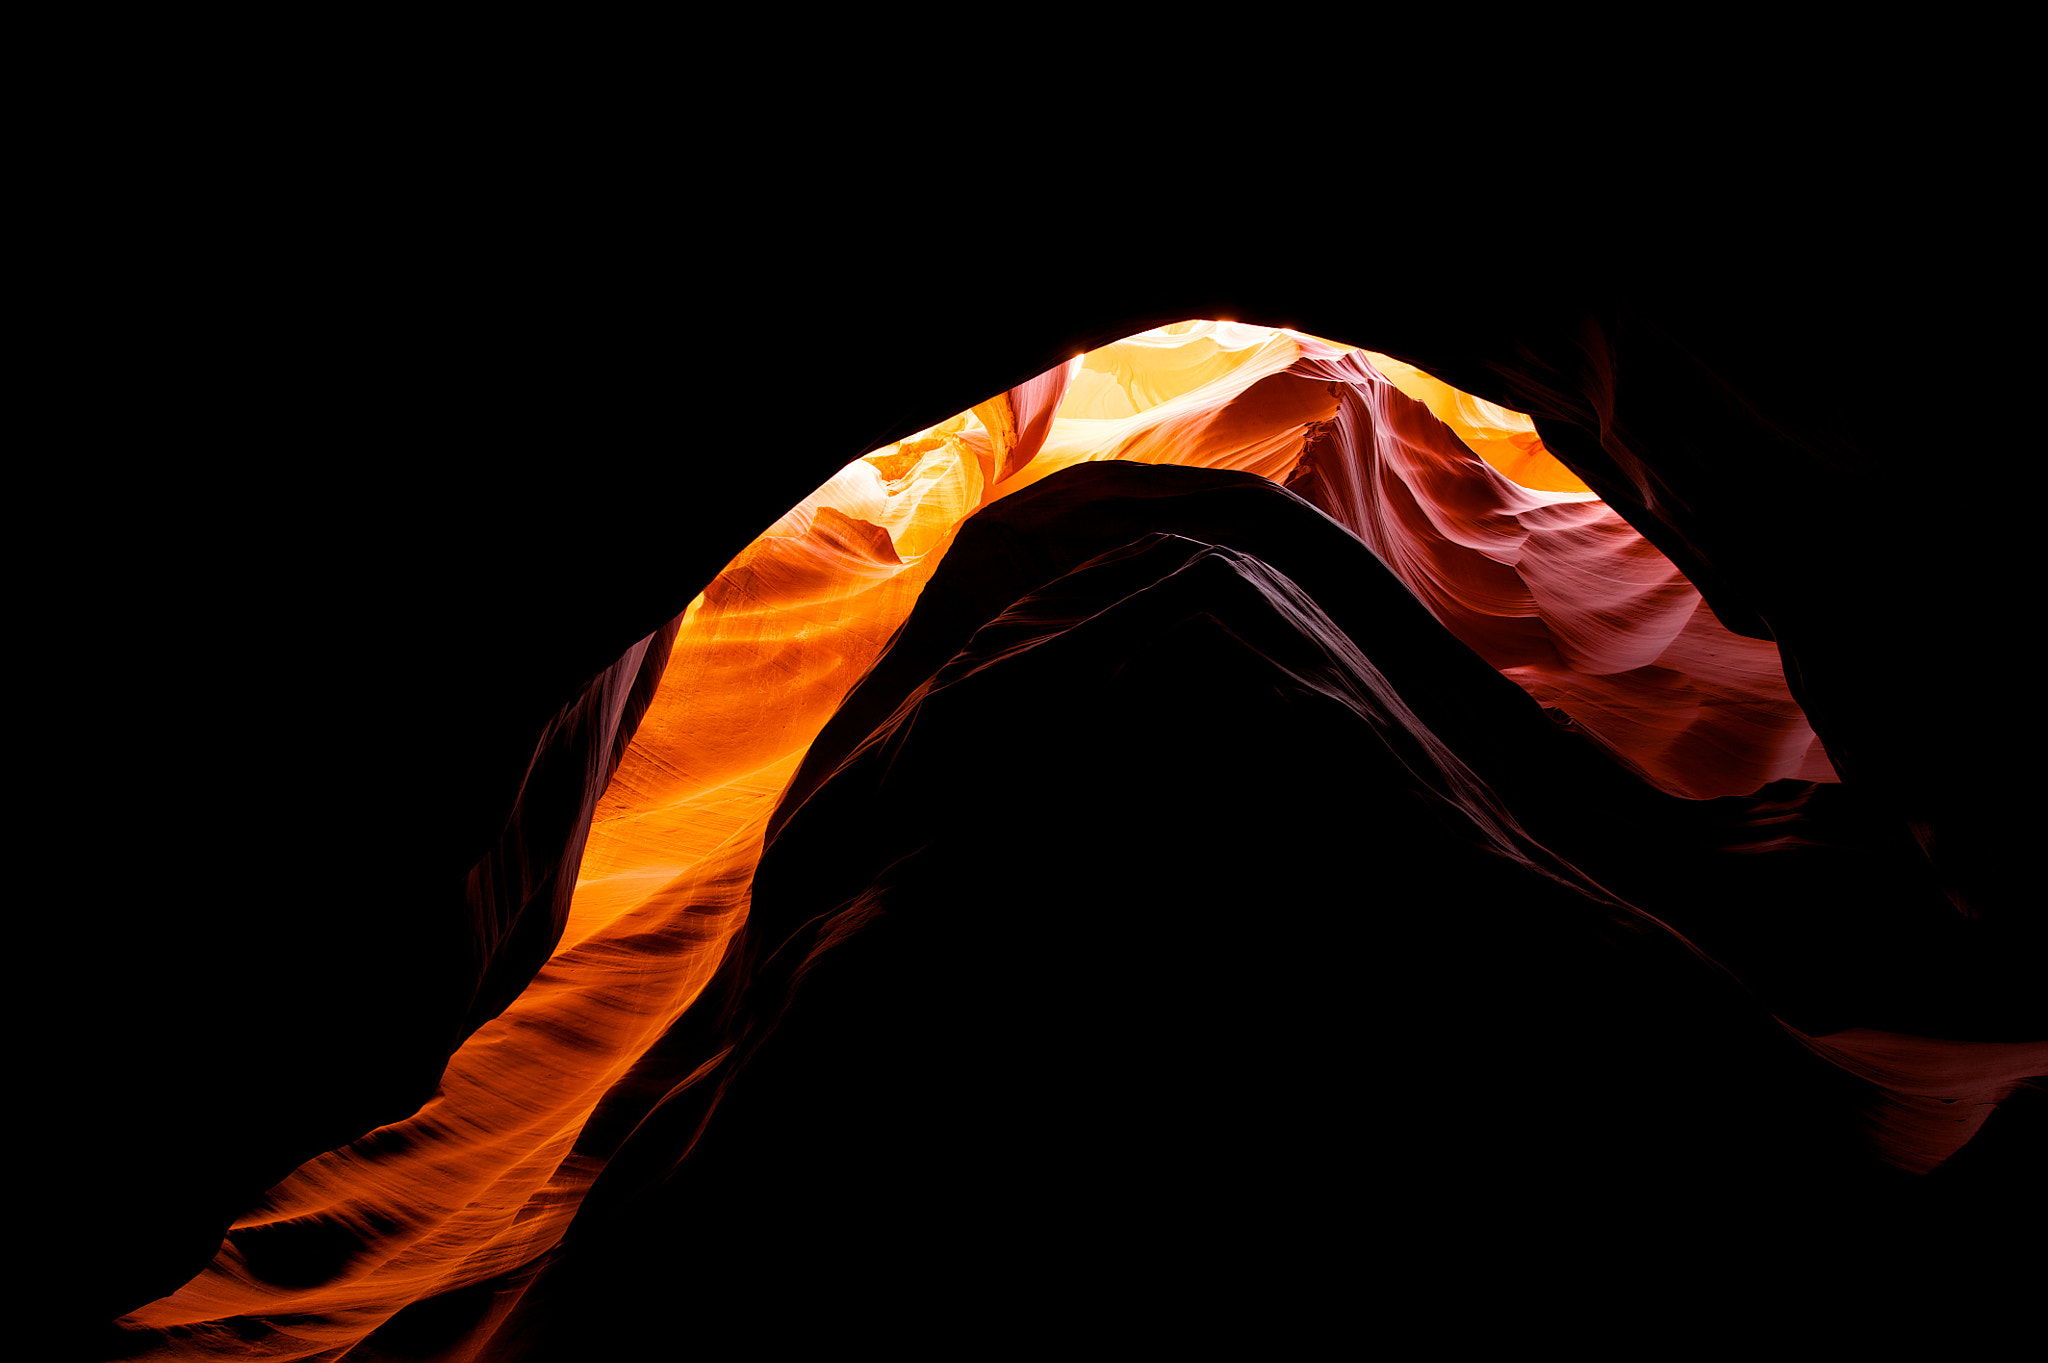 Photograph Fiery Serpent by Nate Perkes on 500px